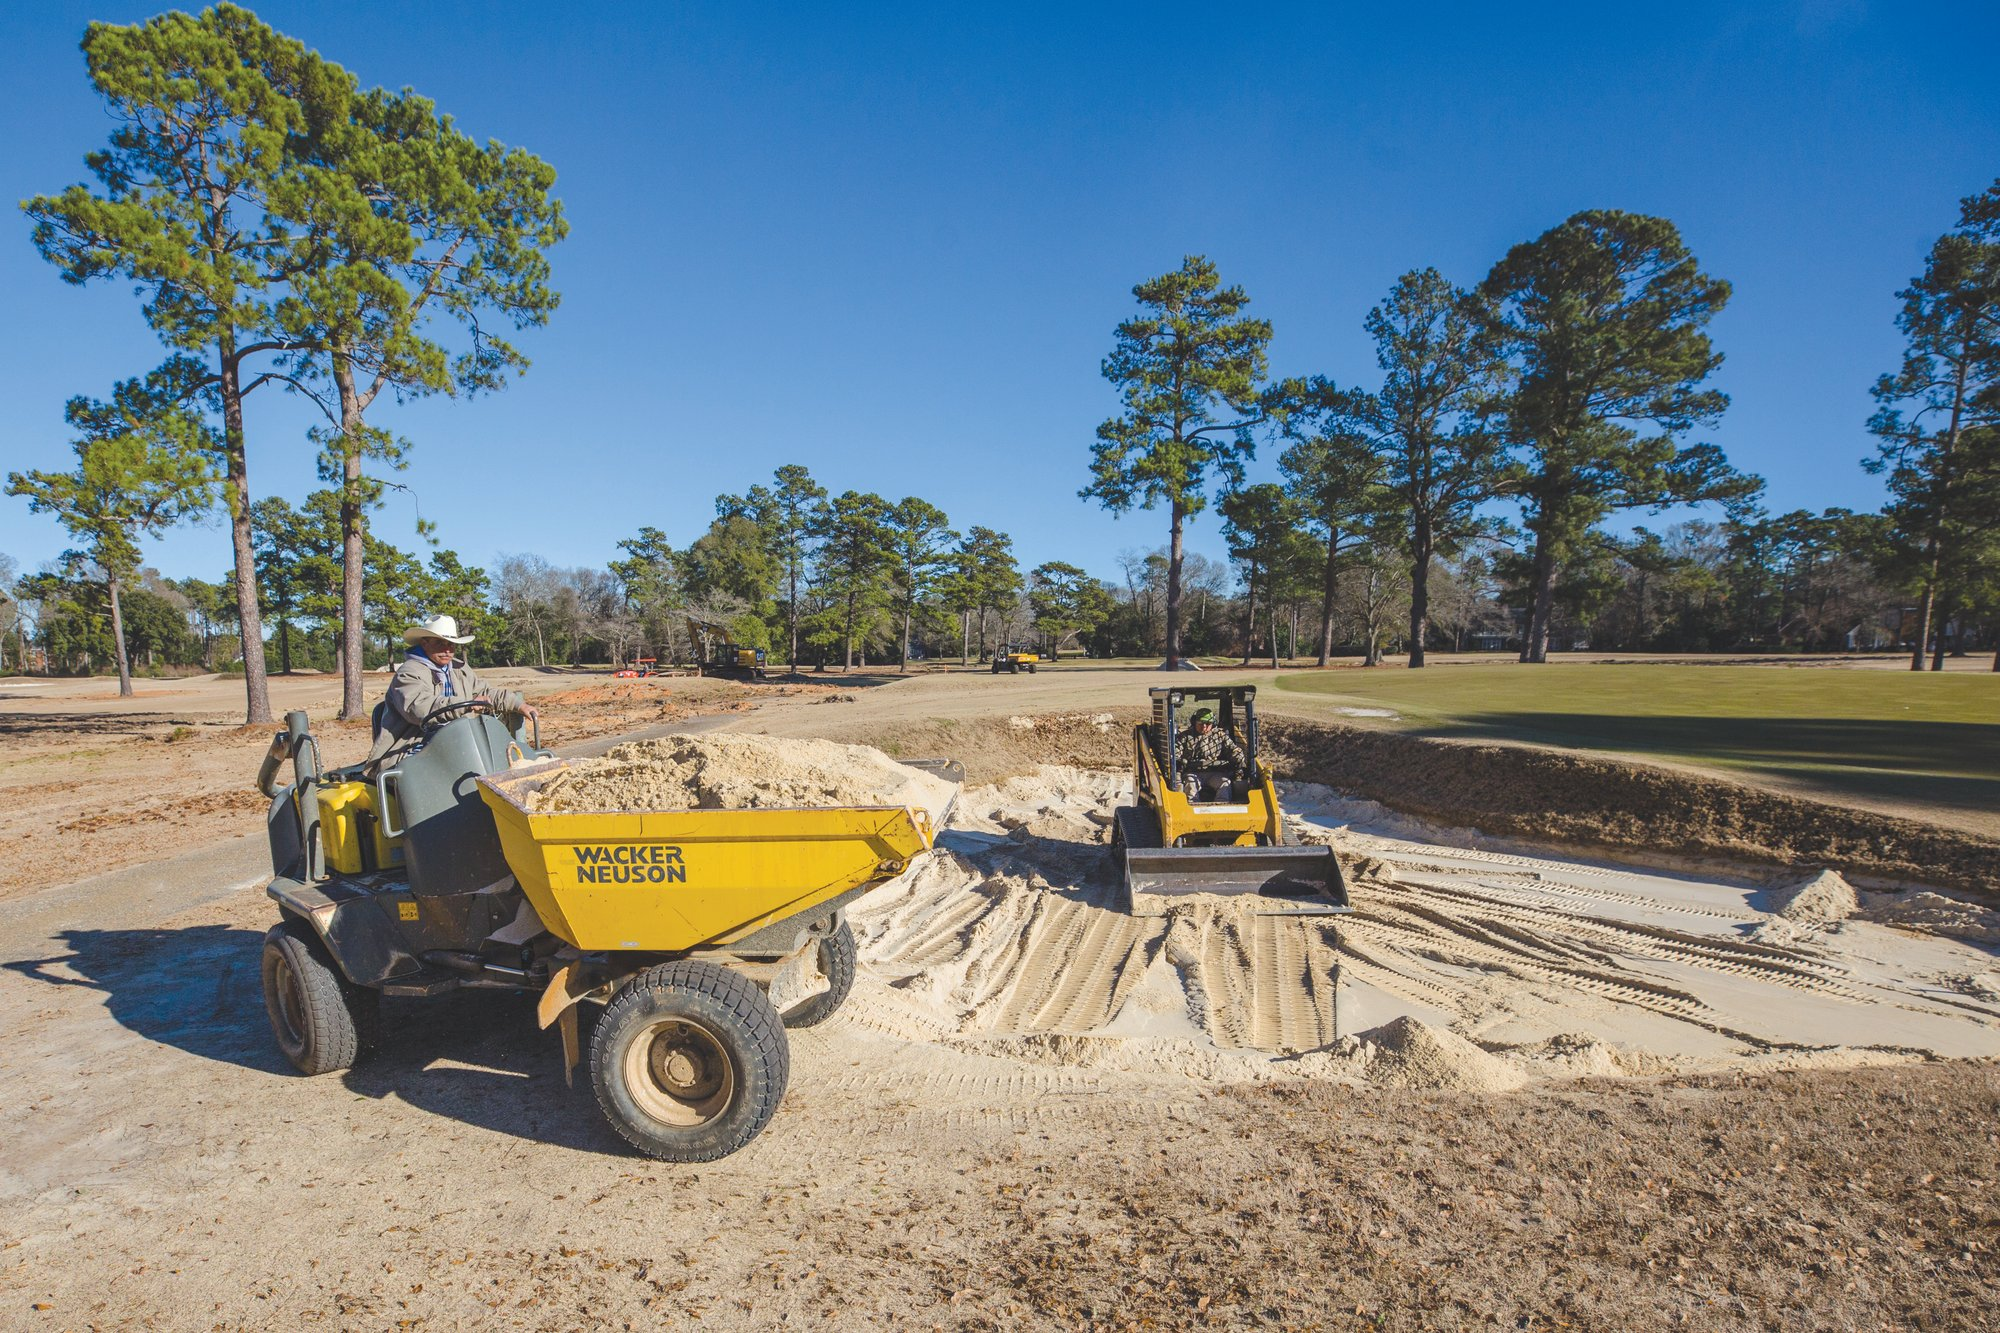 The golf course at what was Sunset Country Club is under construction. Greg Thompson and his brother, Lewis Thompson, bought the property last year and have renamed it Quixote Club. It could open by the end of this year after a renovation.